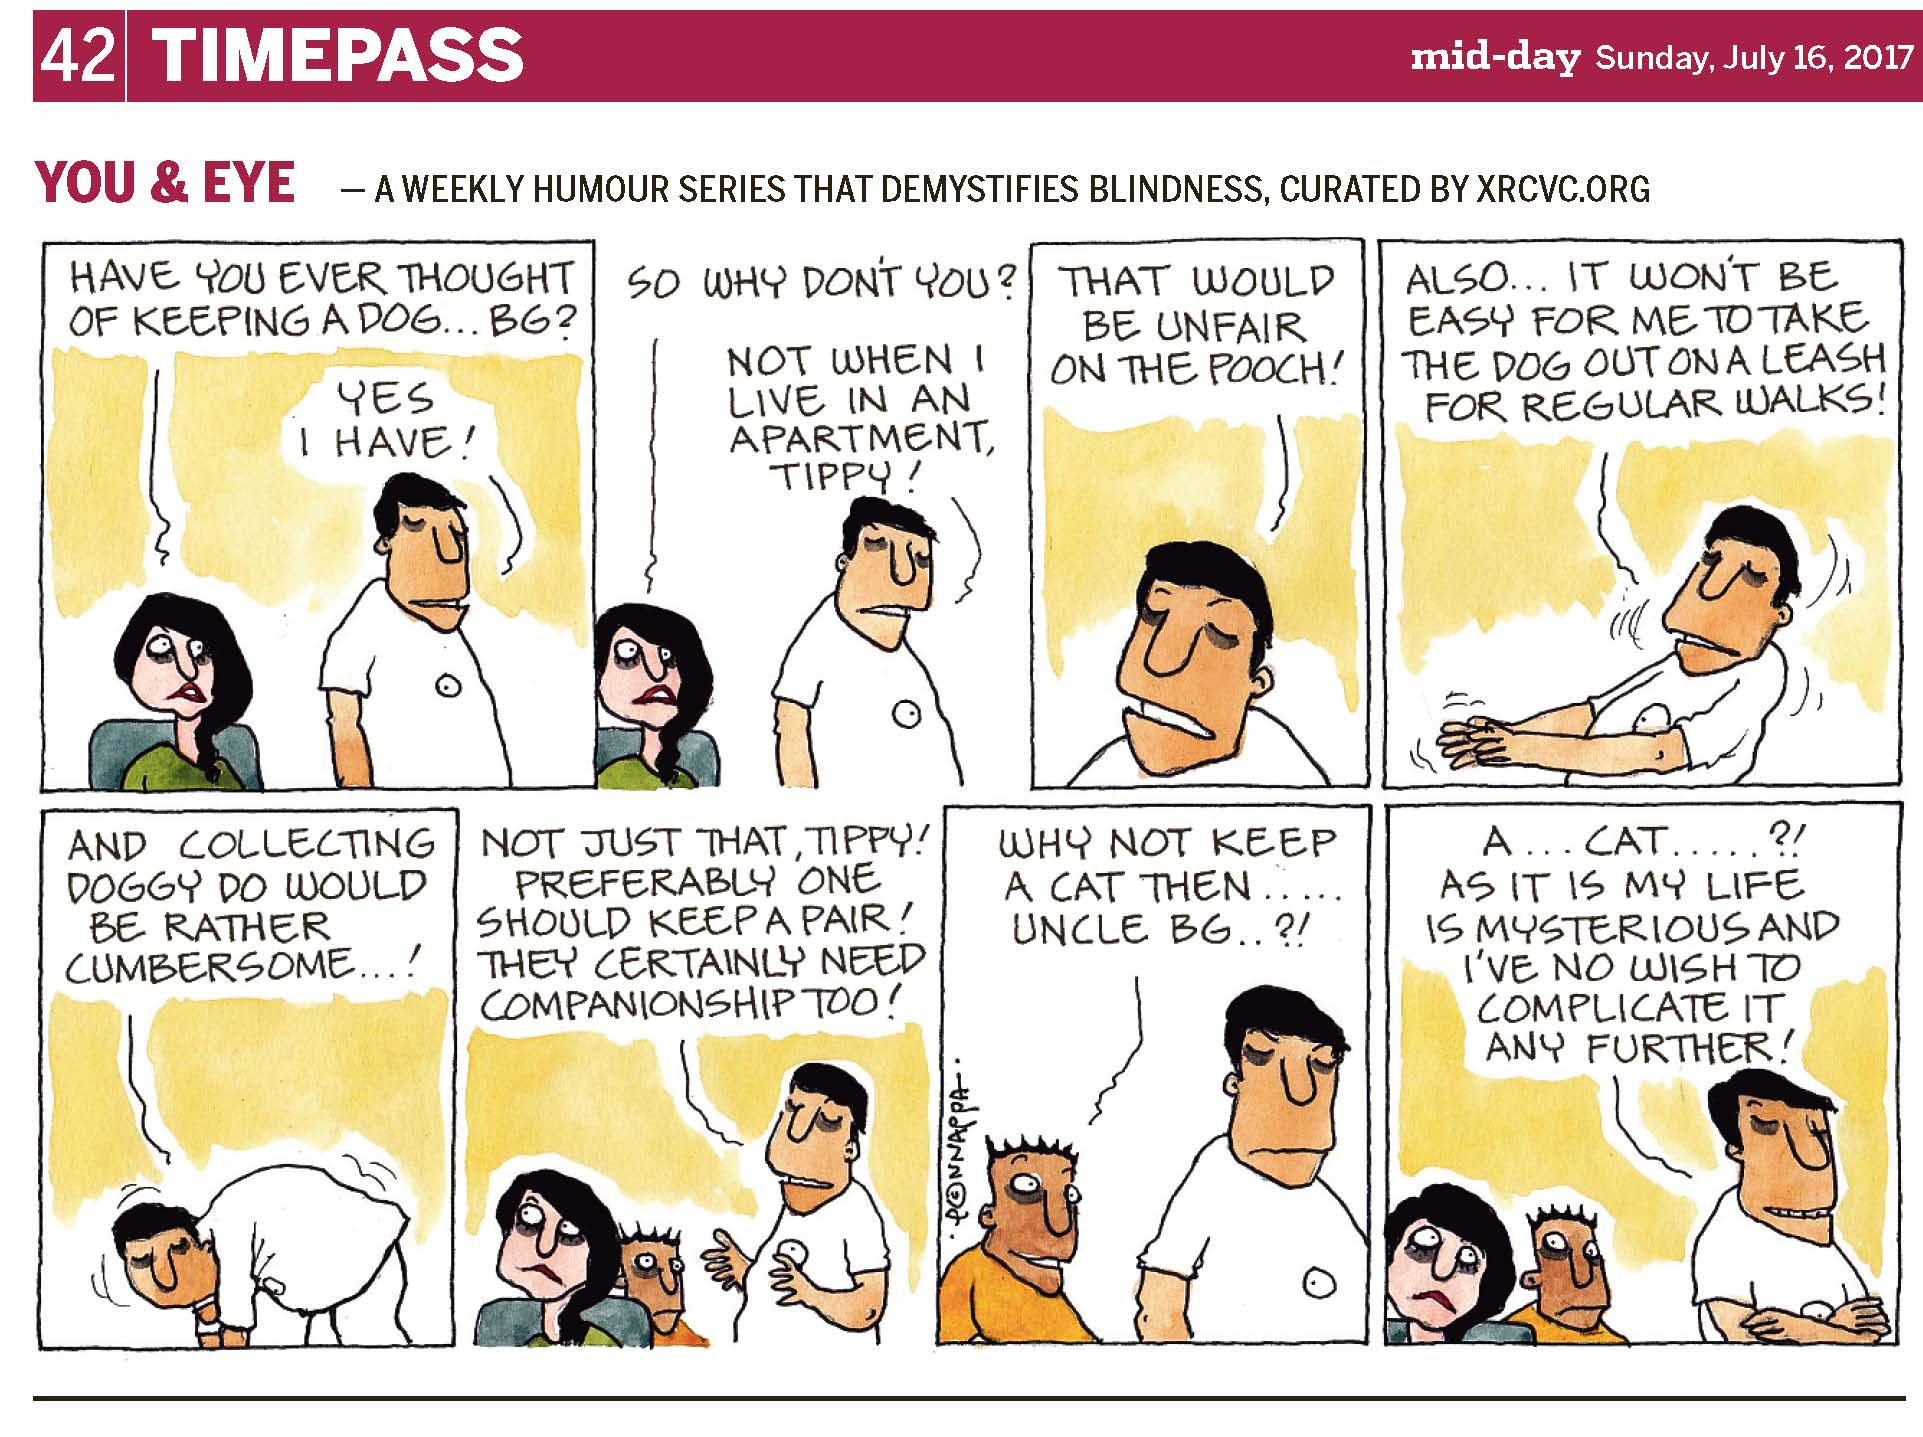 (top-left) 42 | TIMEPASS (top-right) mid-day Sunday, July 16, 2017 